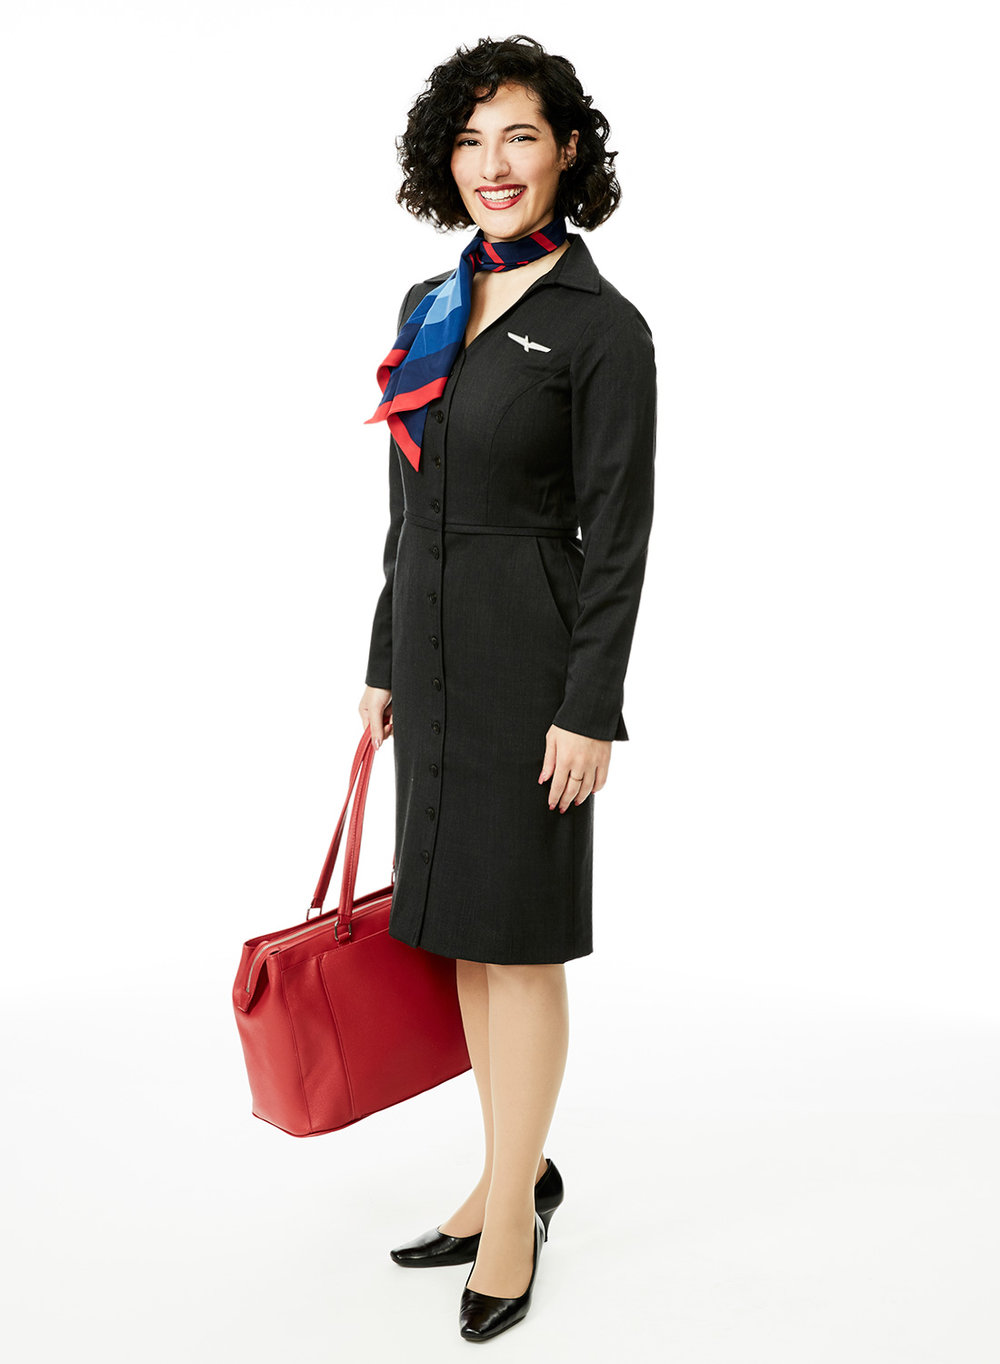 160920_AmericanAirlines_Portraits_By_BriJohnson_0005.jpg